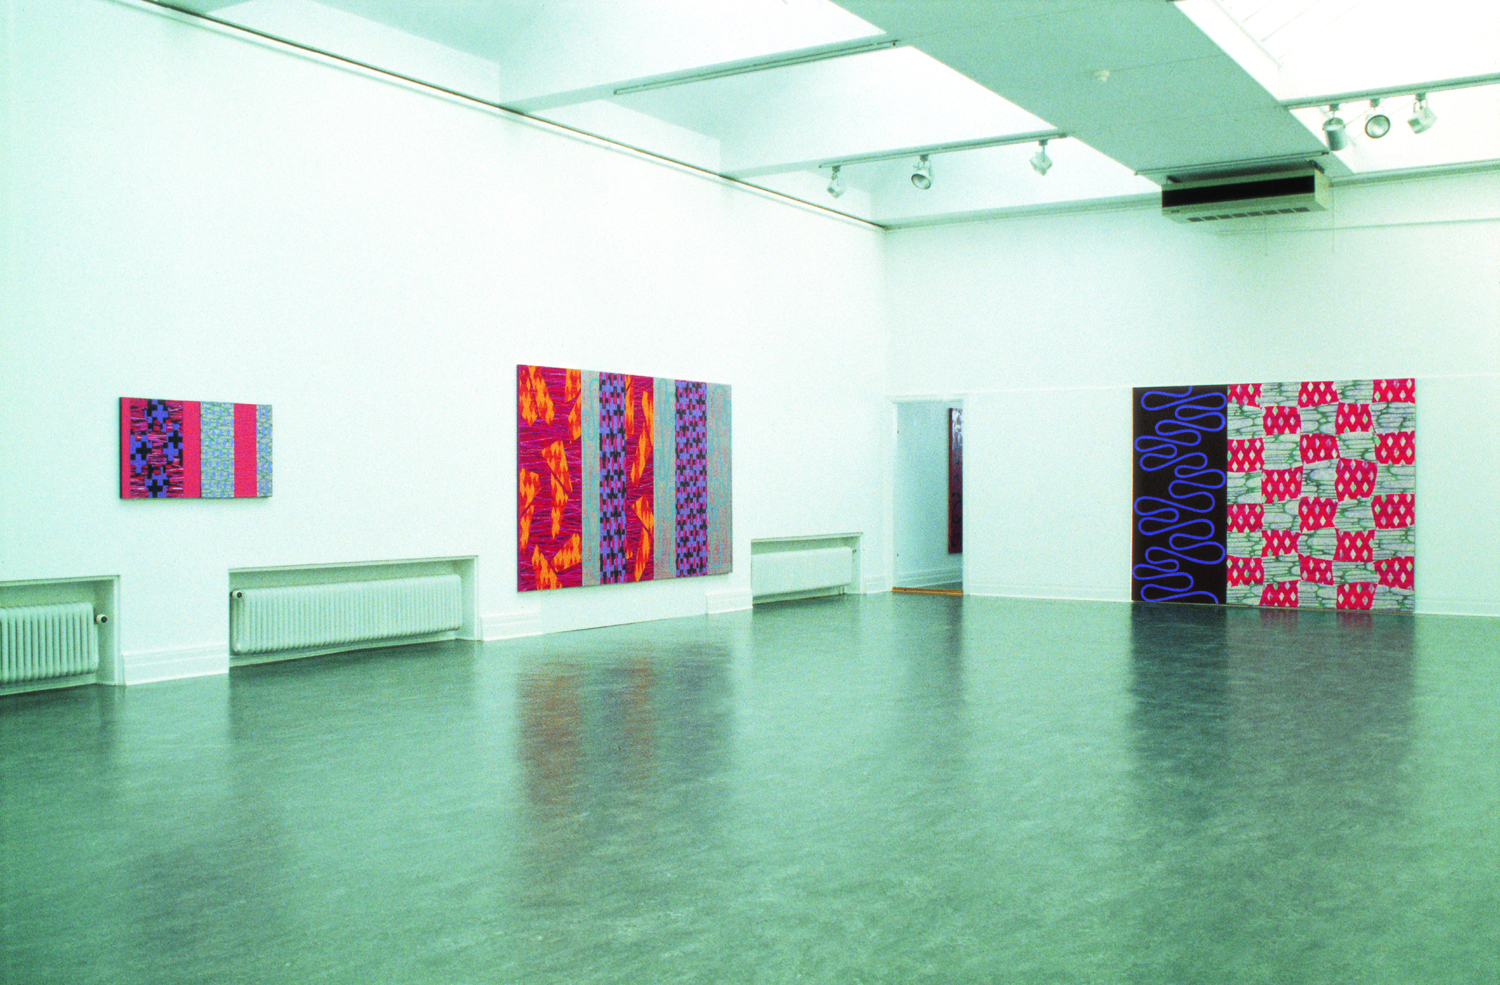 14 A installation view Ystad Art Museum Sweden 1997 1.jpg